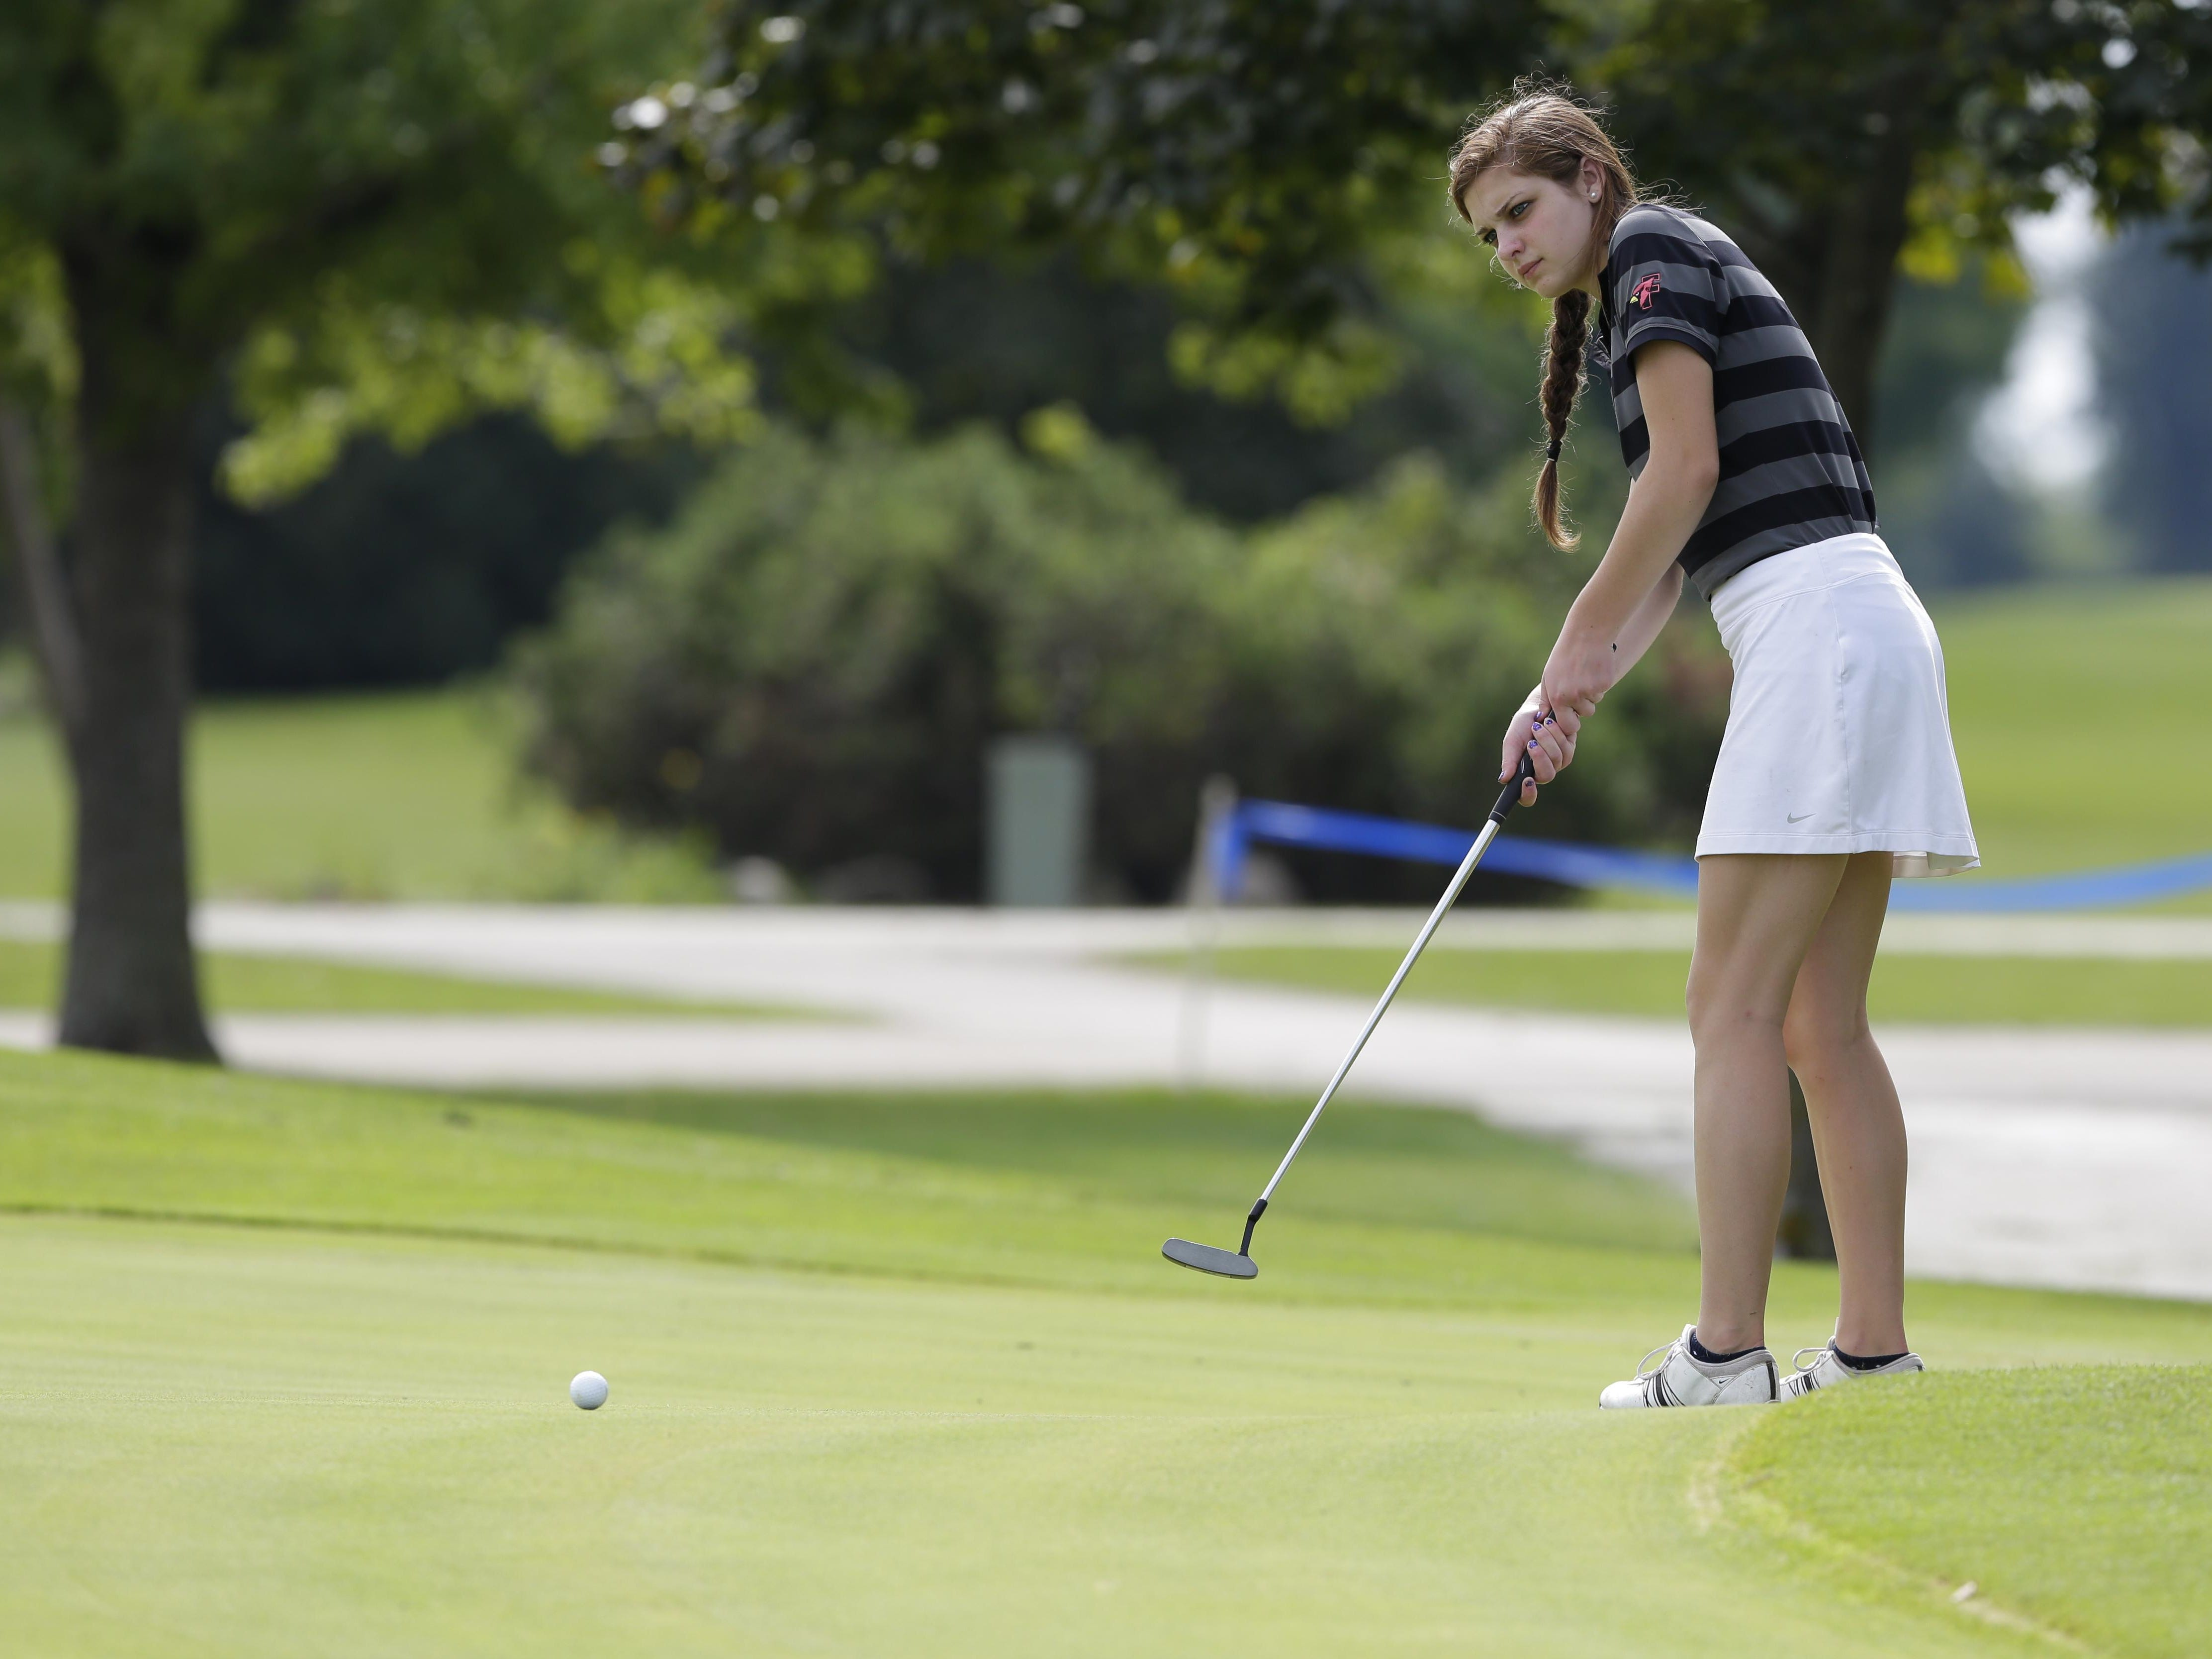 Fond du Lac's Sydney George attempts a long putt during the FVA conference golf meet held at Lake Breeze Golf Course in Winneconne.